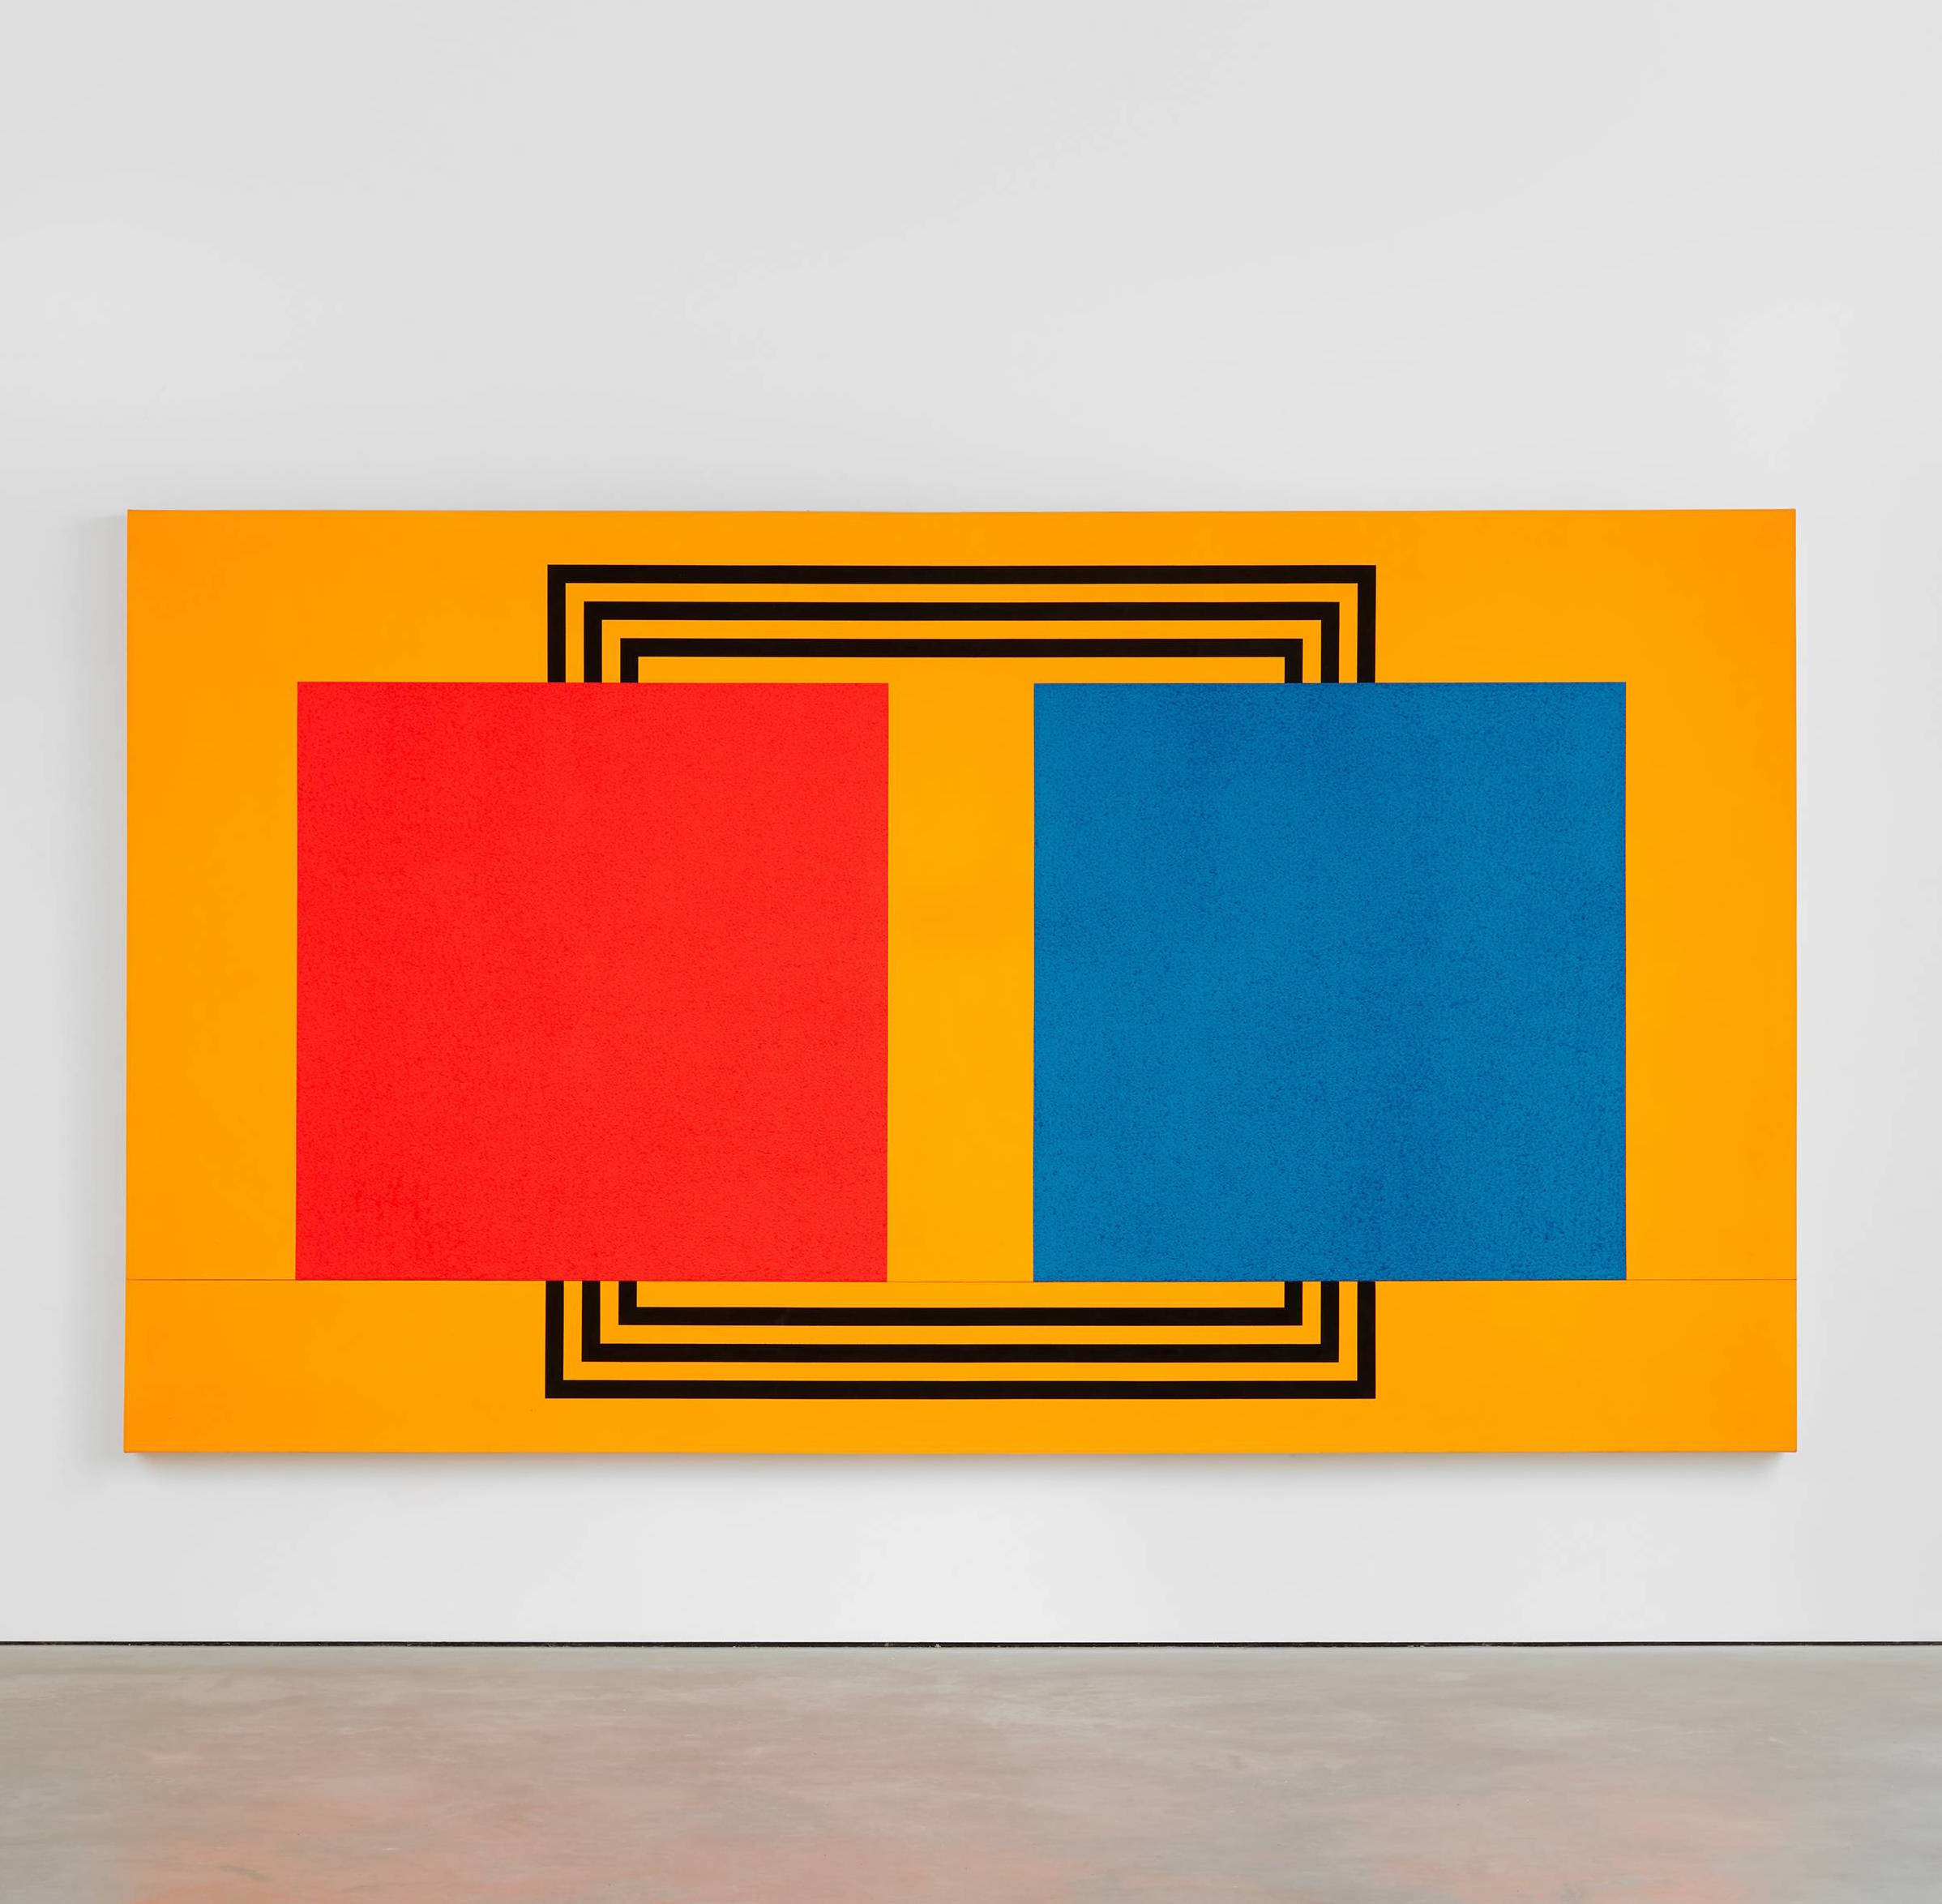 Peter Halley, Two Cells With Circulating Conduit, 1987, acrylic, fluorescent acrylic, Roll-a-Tex on canvas, 77 1/8 x 138 1/4 inches (courtesy of Modern Art, London)